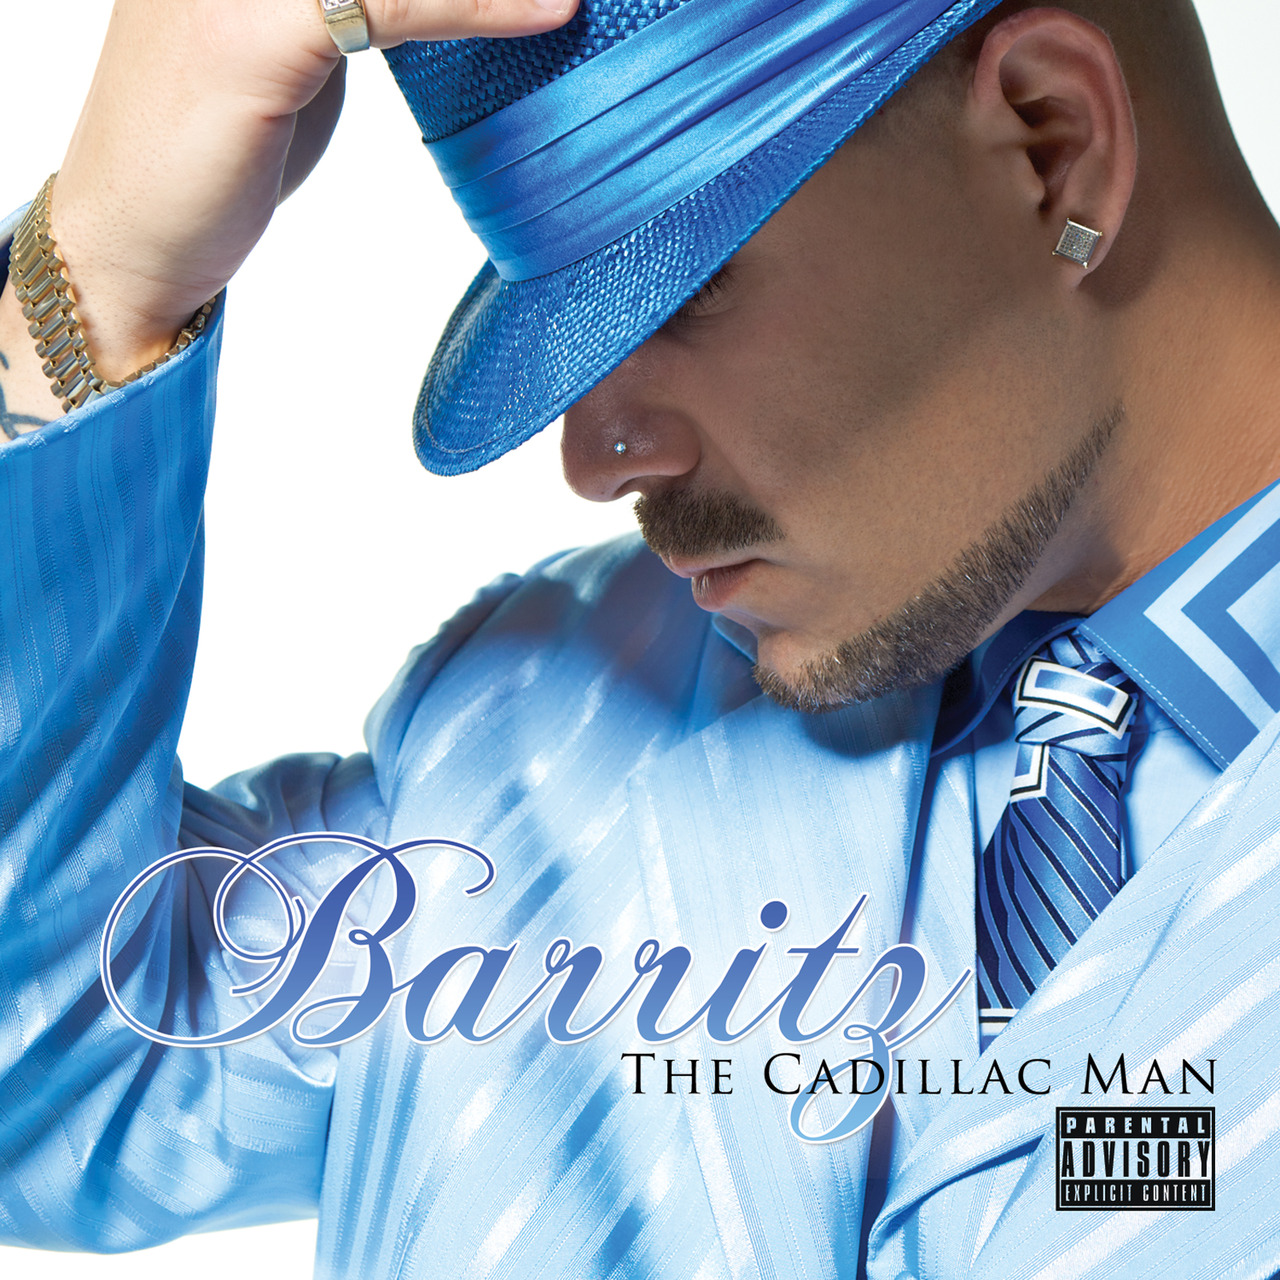 The Cadillac Man by Barritz. Get your copy on iTunes today!